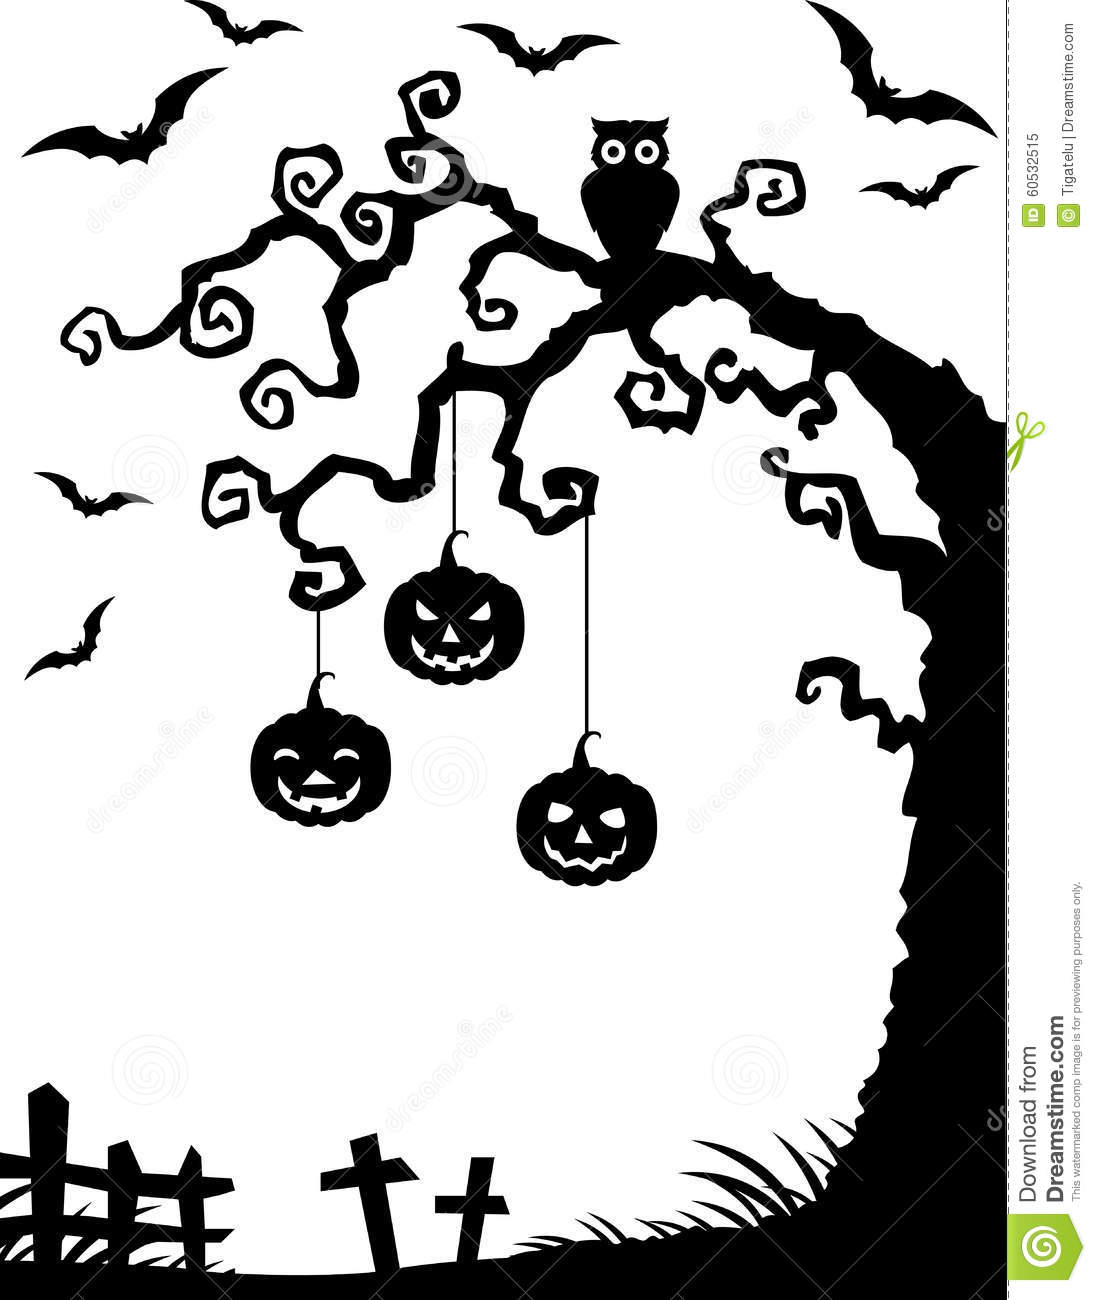 Stock Illustration Halloween Background Dead Tree Silhouette Owl Pumpkin Illustration Image60532515 on scary cemetery clip art